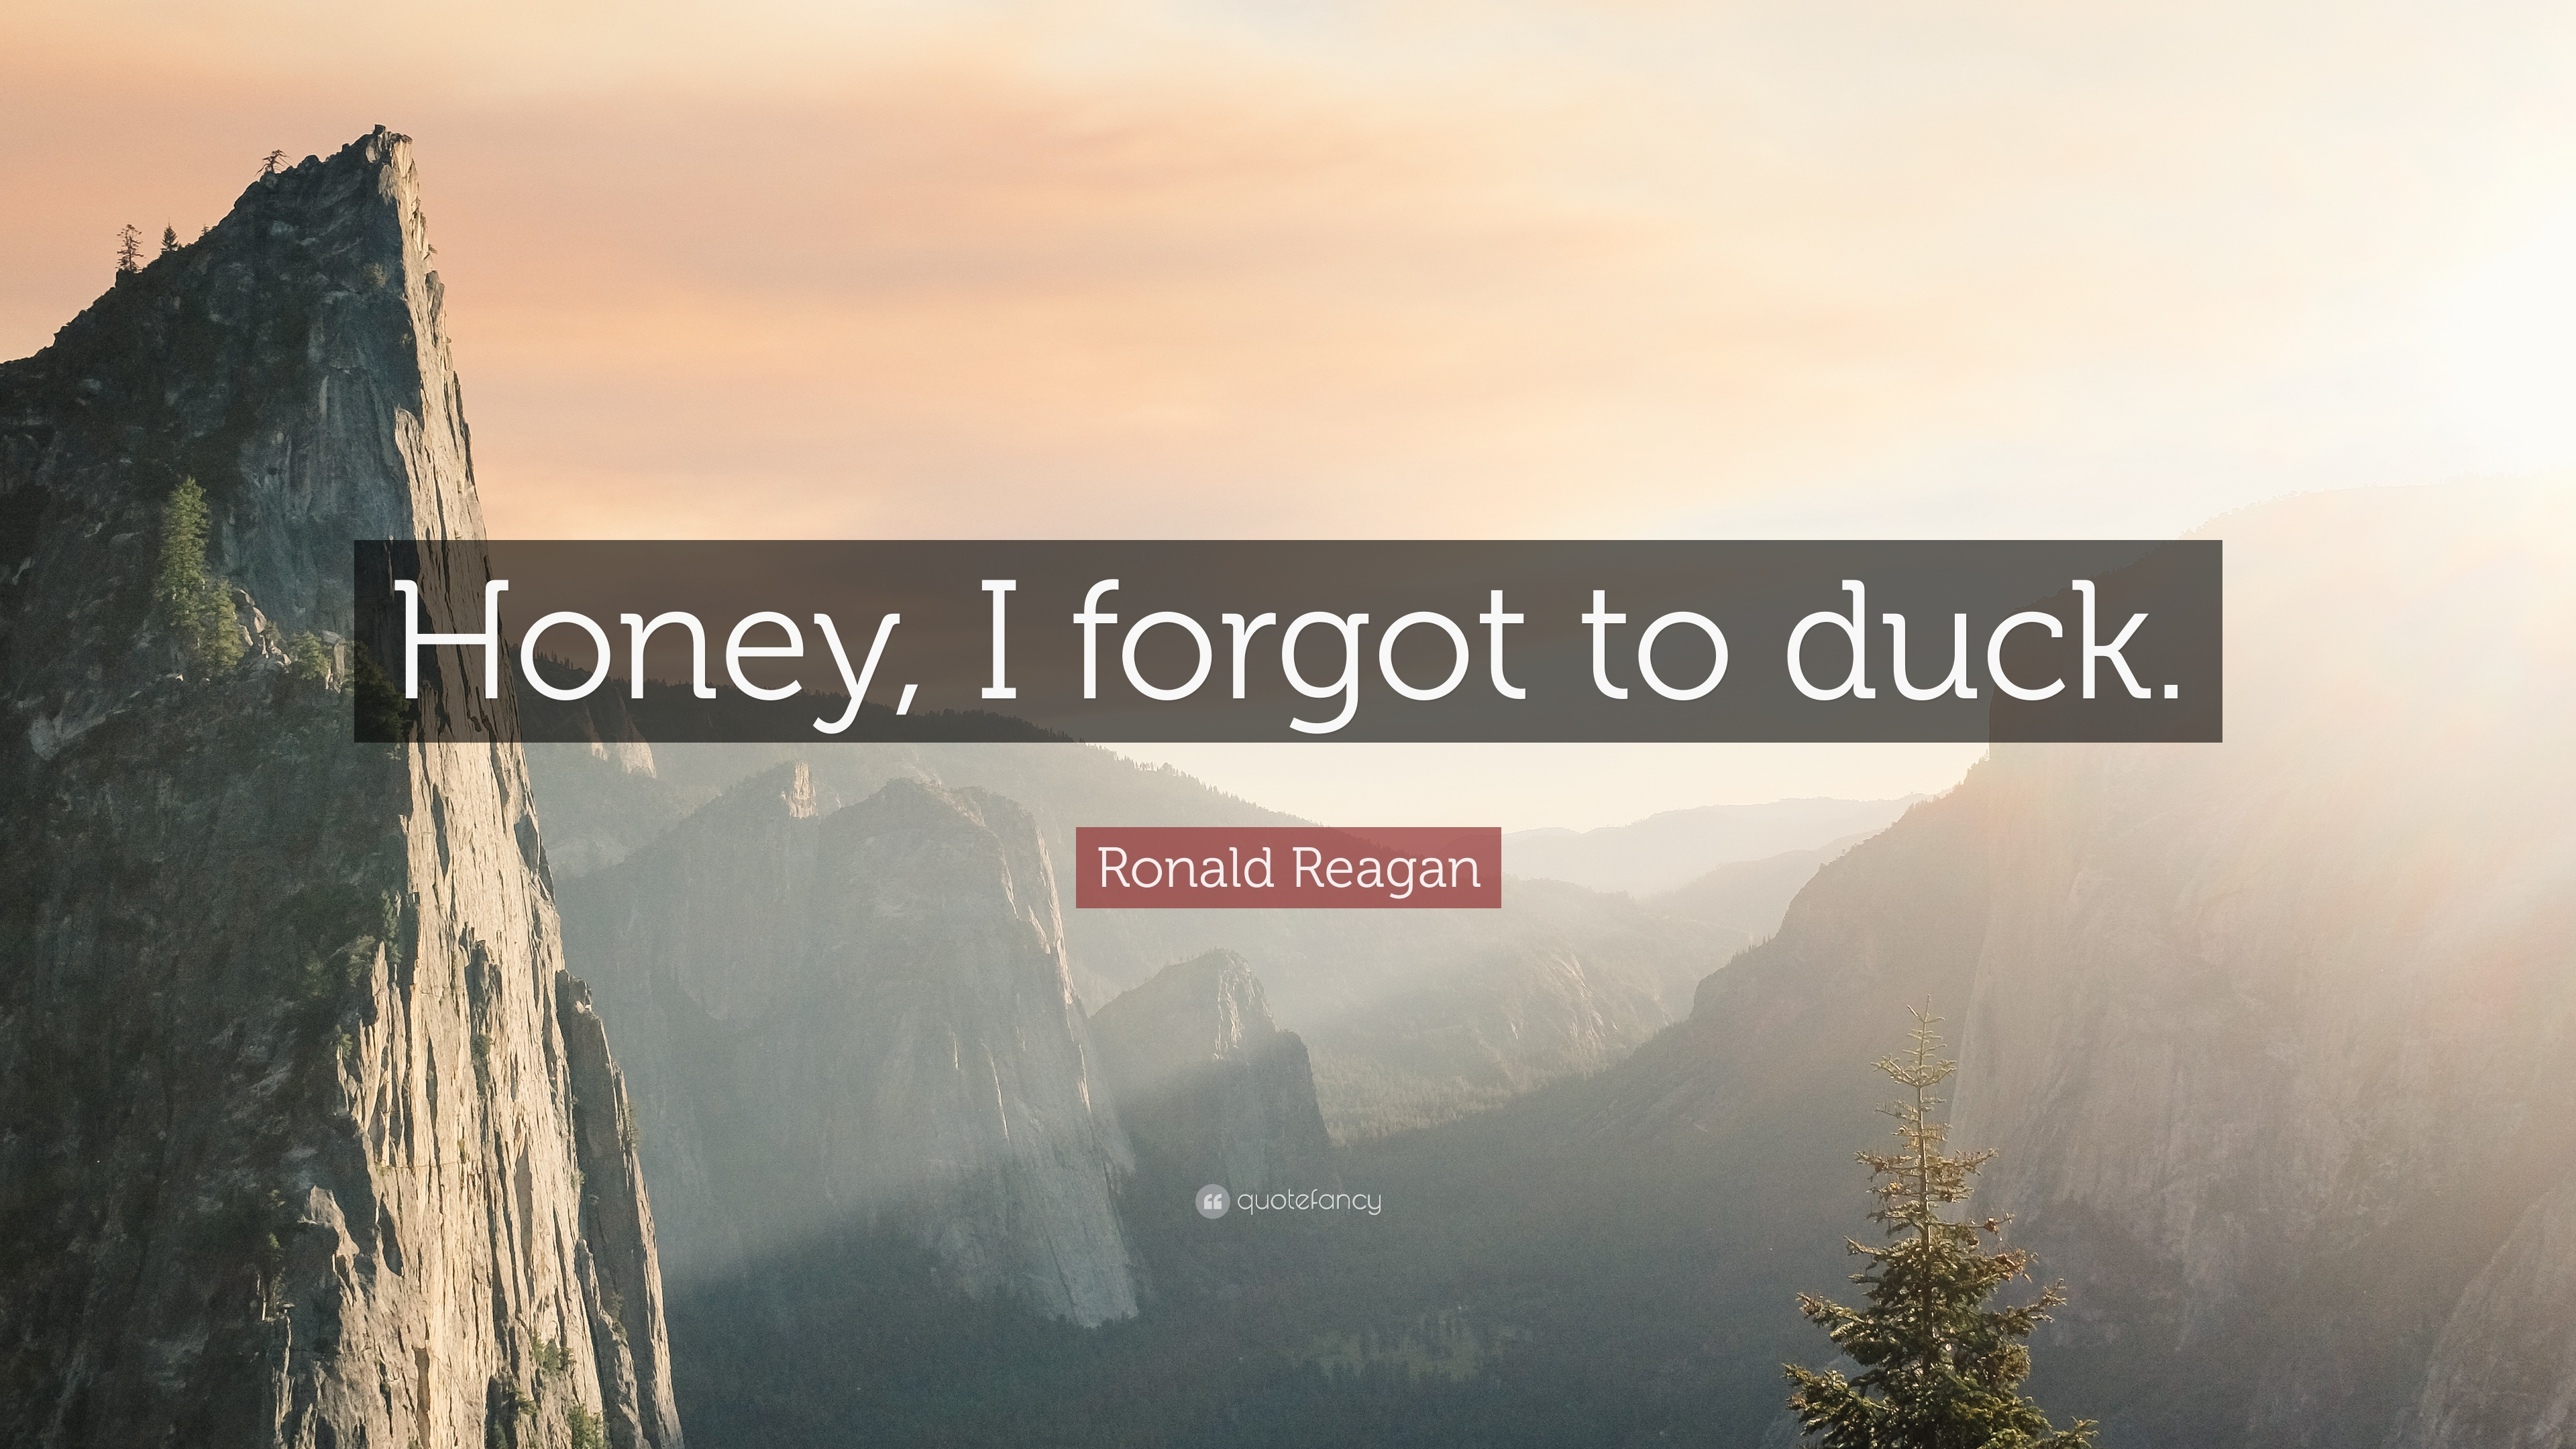 Ronald Reagan Quotes wallpapers Quotefancy